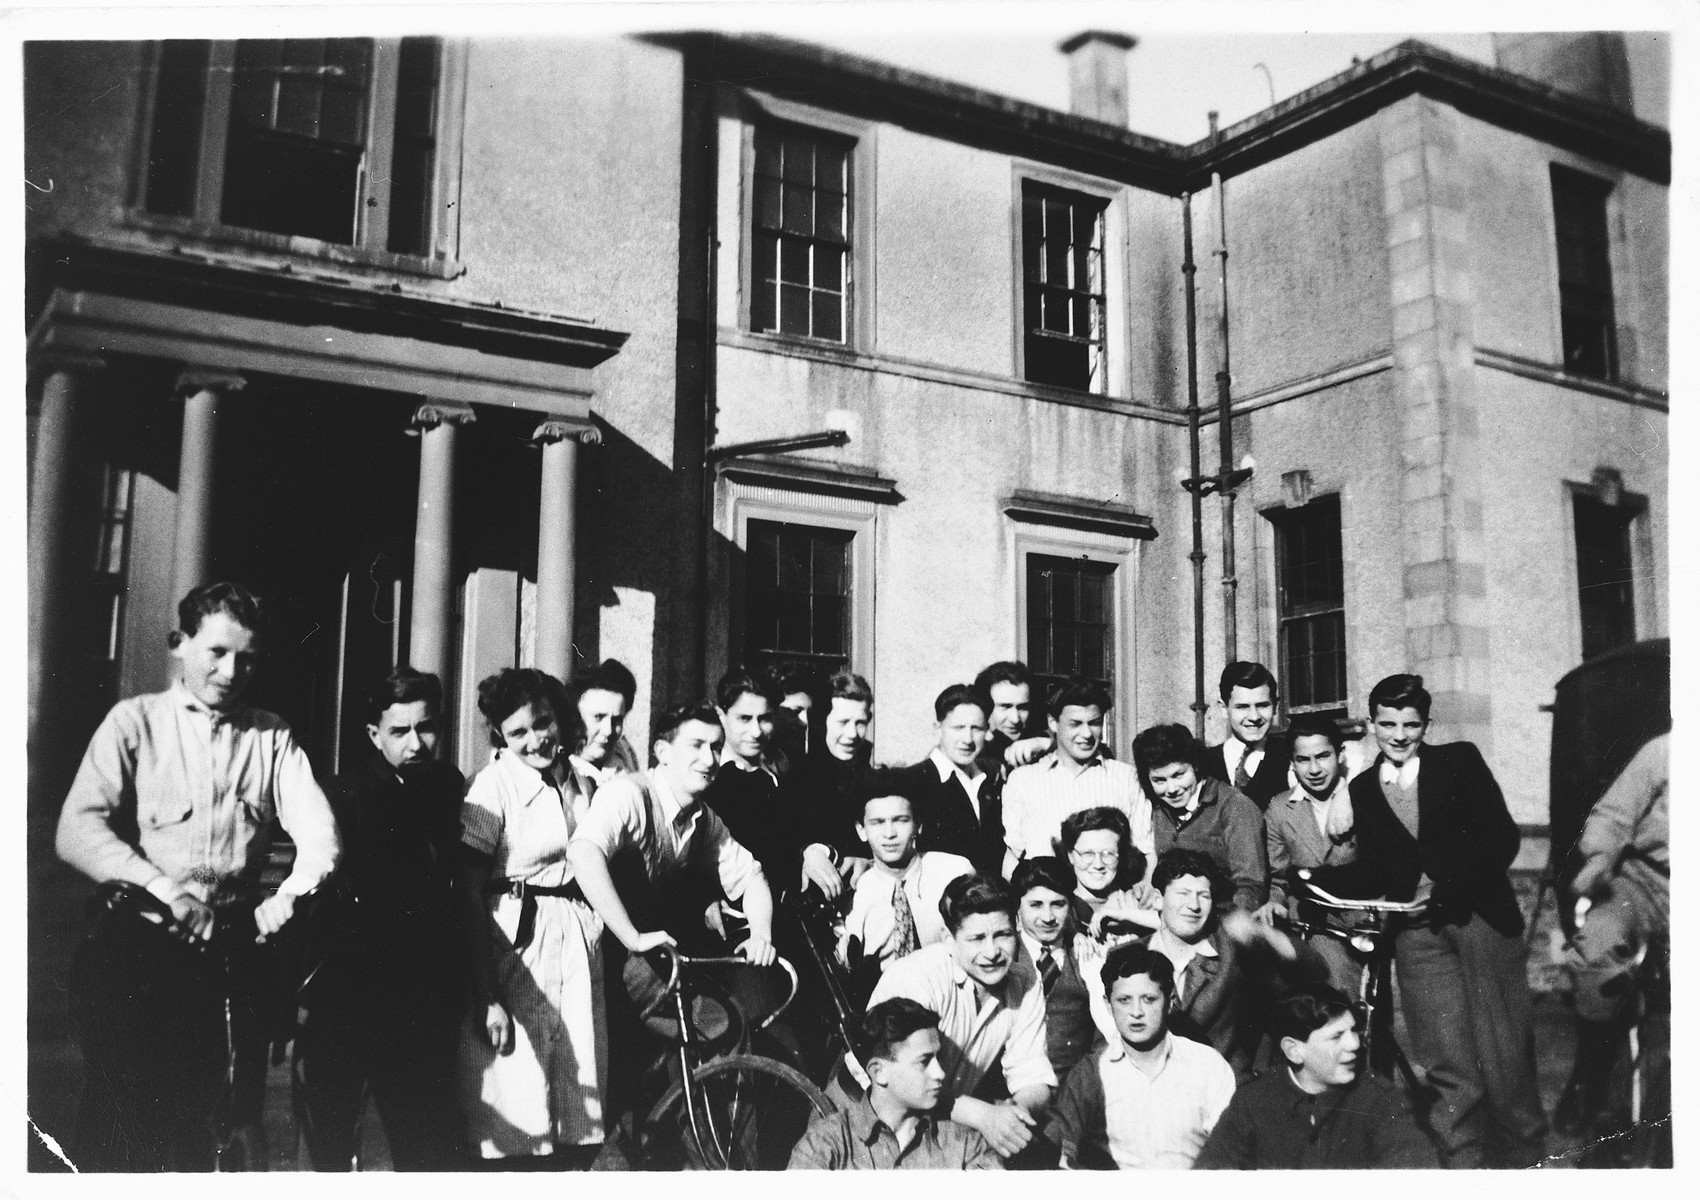 Group portrait of Jewish orphans who had been evacuated from Germany, in a children's home in Dumbarton, Scotland.